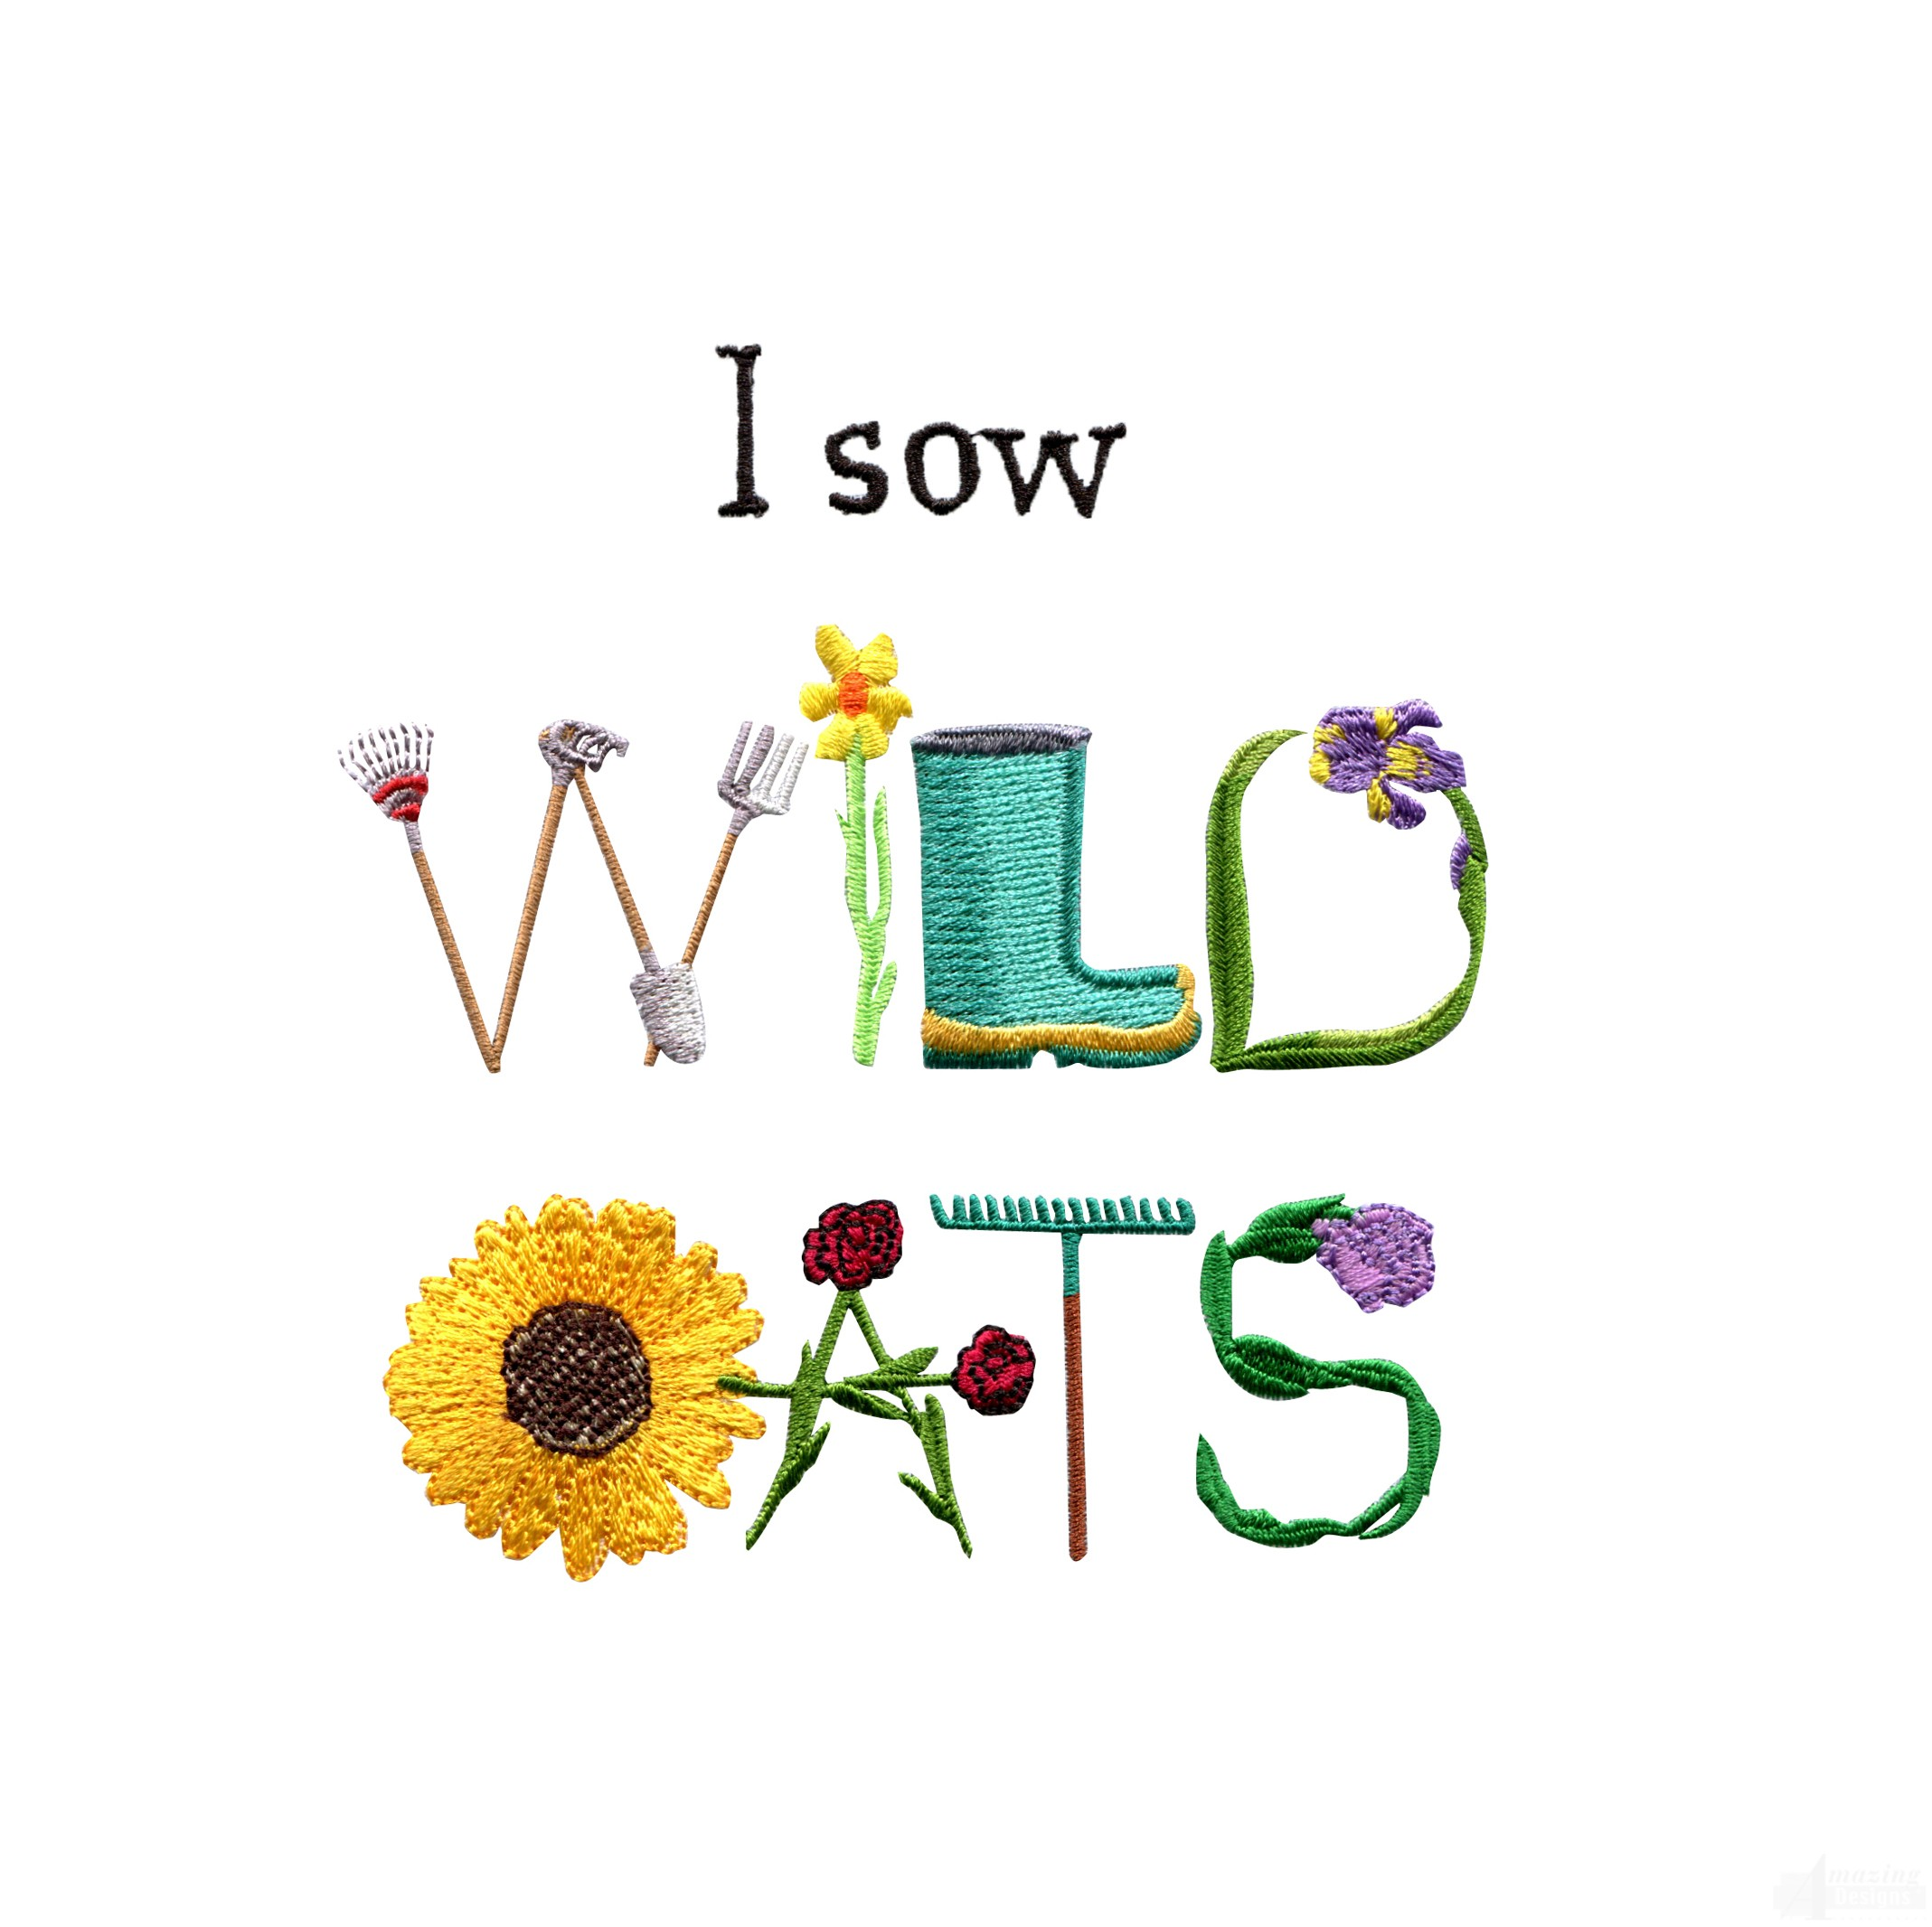 To sow wild oats